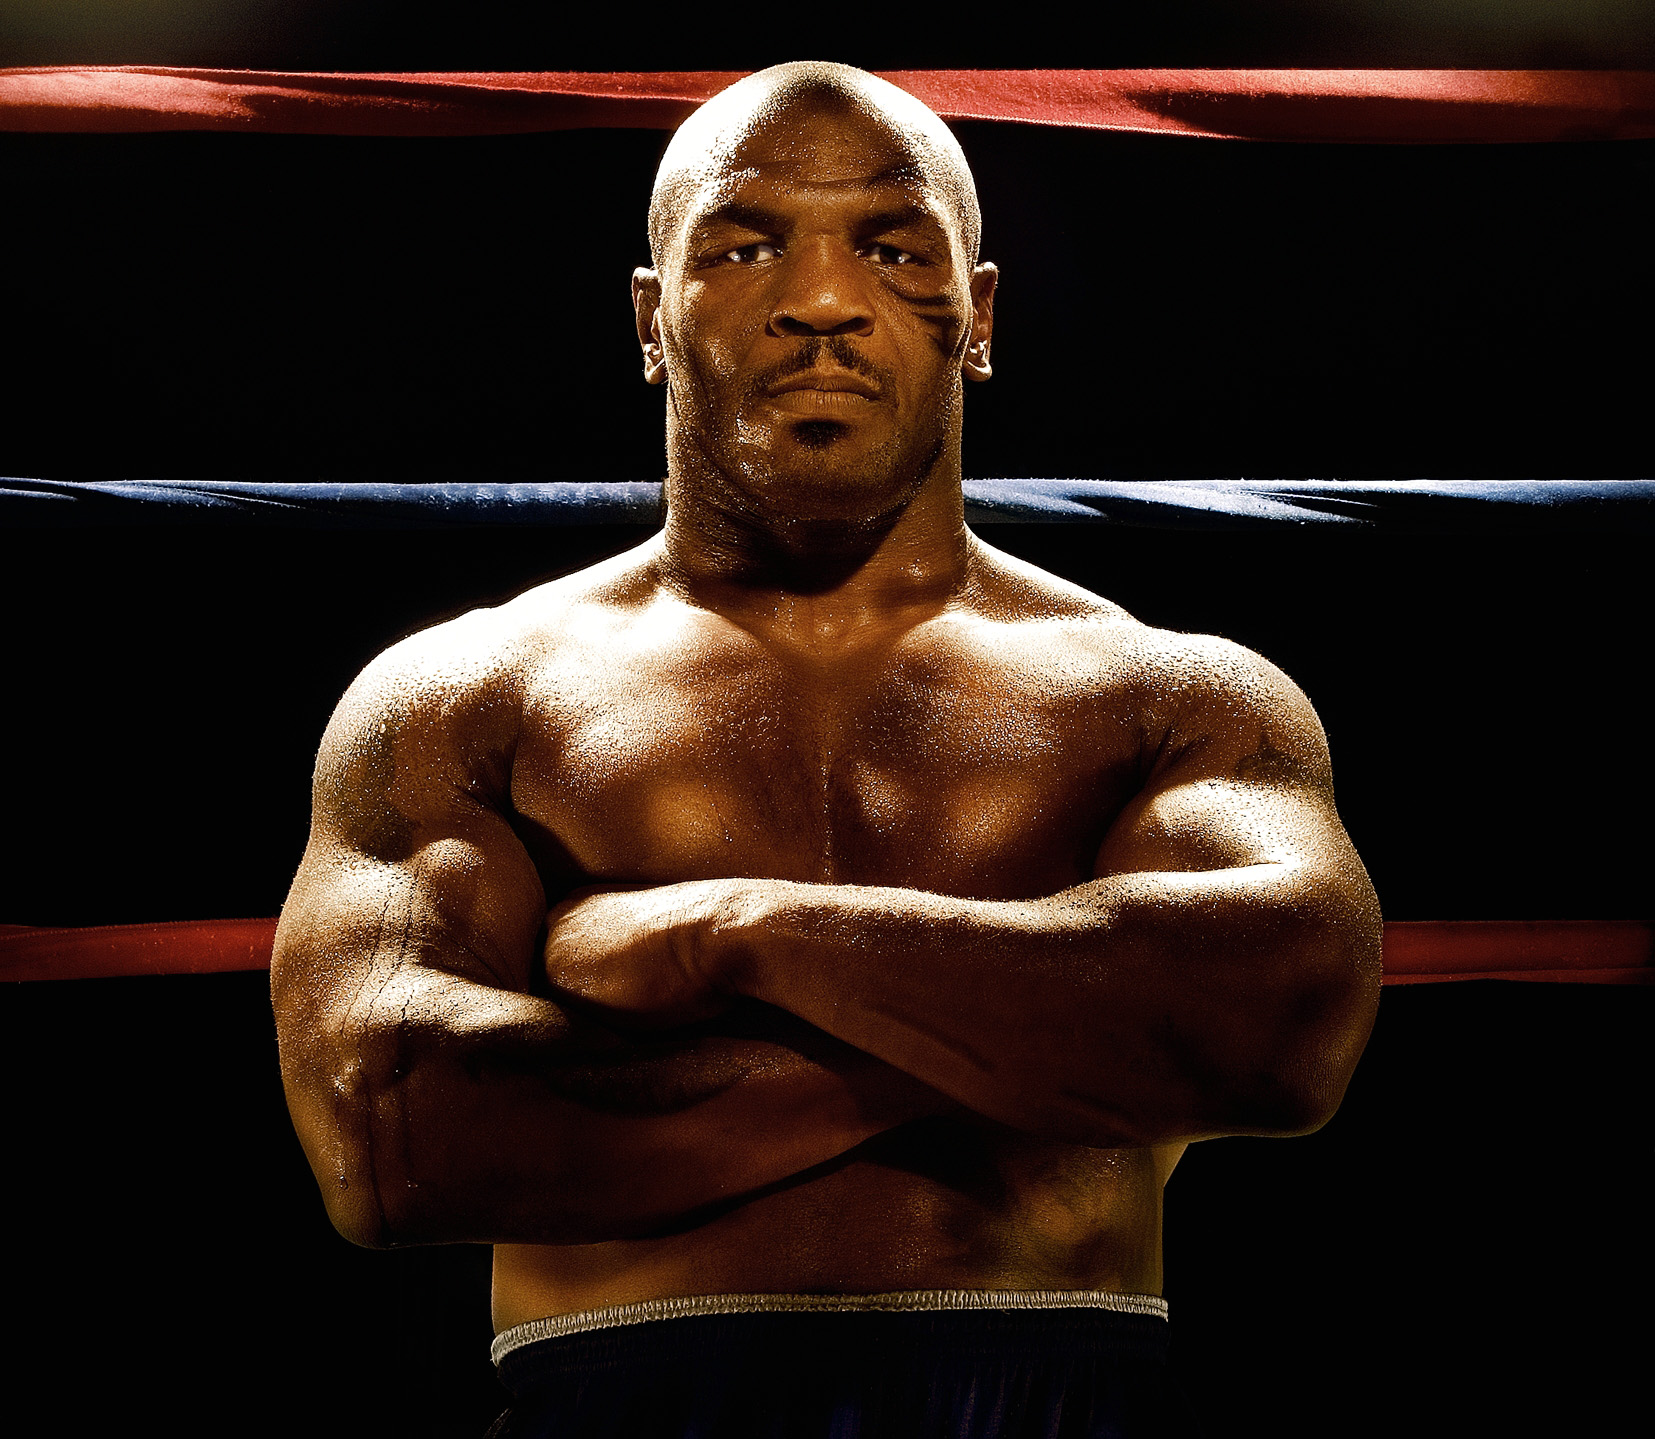 Mike Tyson by Celebrity Photographer Blair Bunting